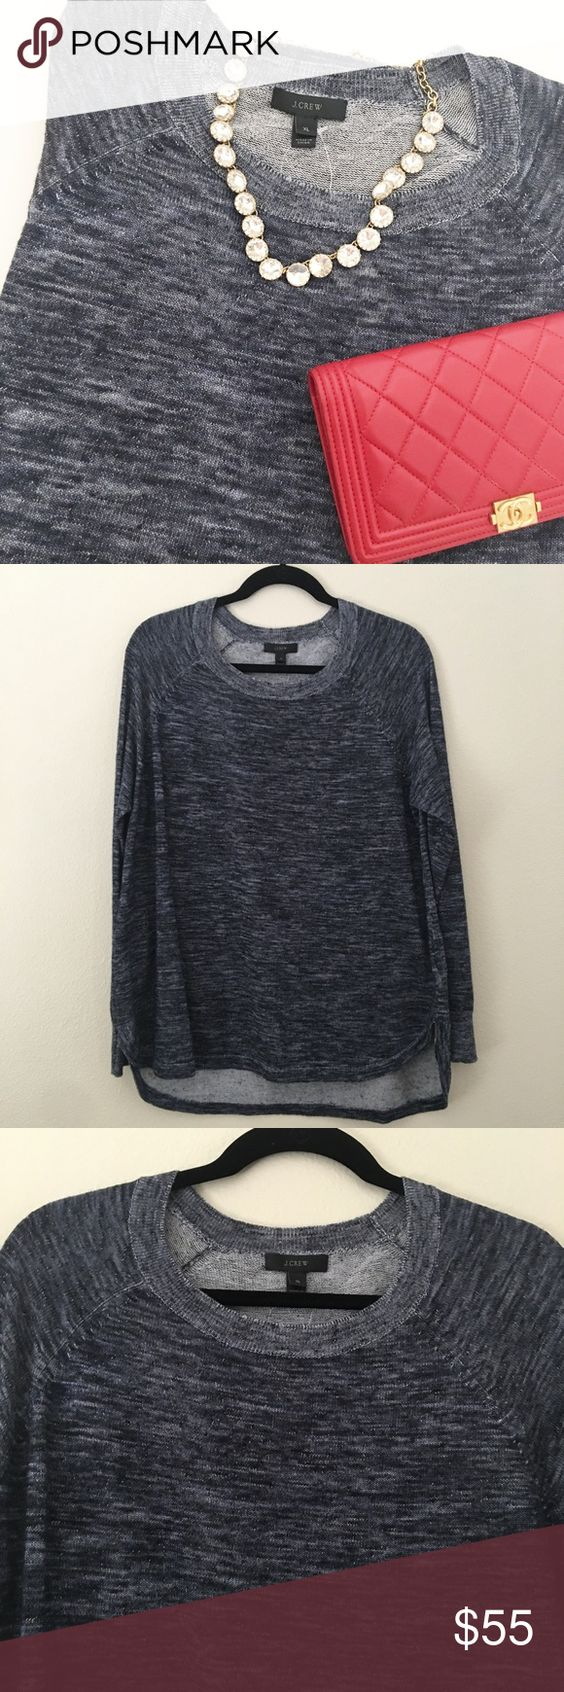 Lightweight J. Crew sweater Super lightweight J. Crew sweater. From J. Crew retail. Looks blue in some lights and charcoal in others. Brand new with tag. No trades. No PayPal. J. Crew Sweaters Crew & Scoop Necks